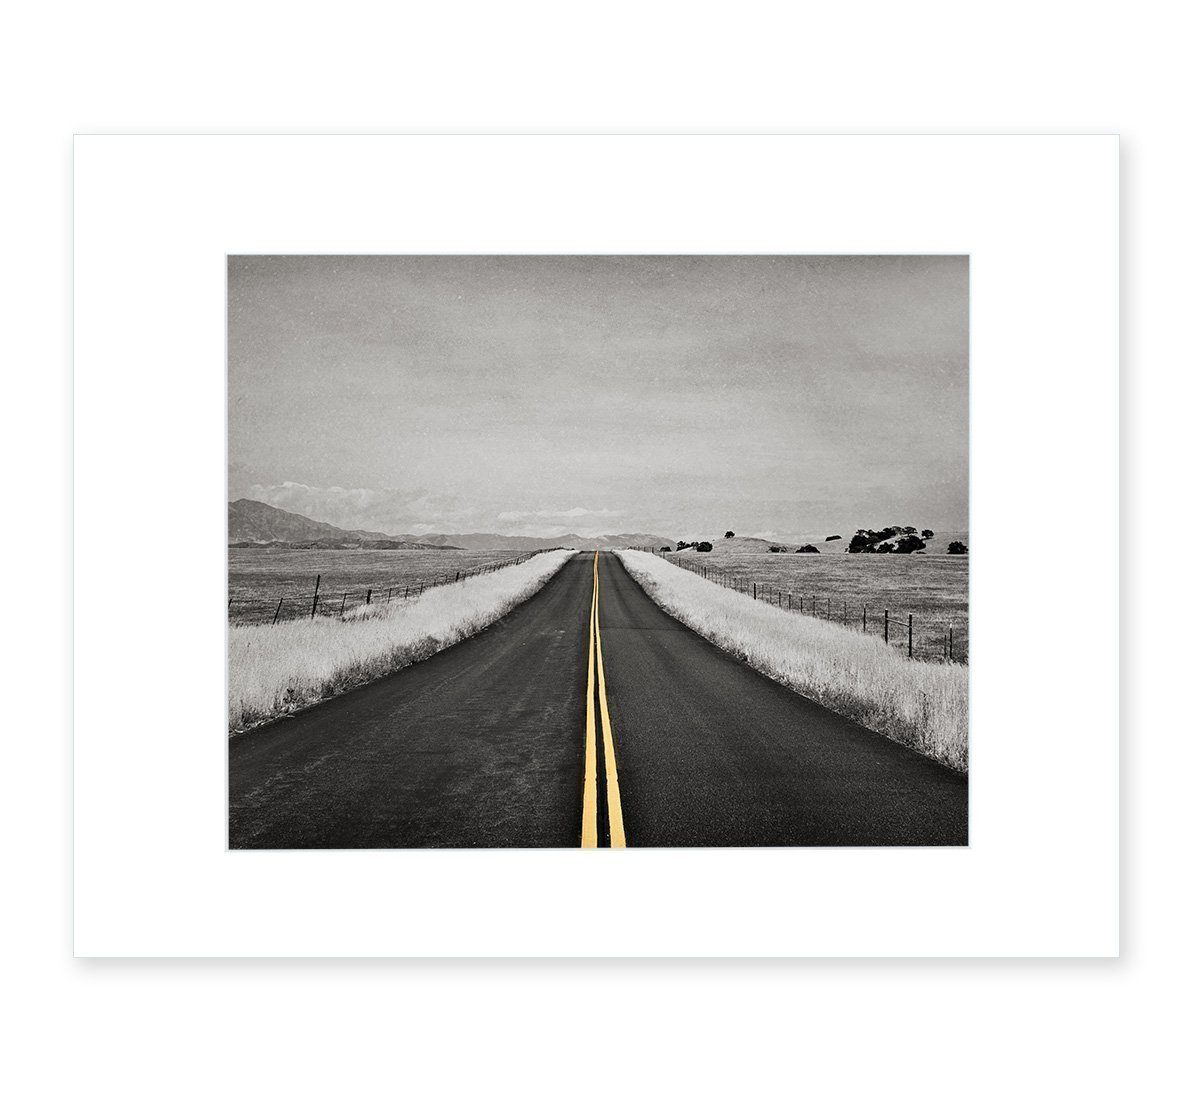 Abstract Black and White Open Road Photography with Yellow Color Accent, 8x10 Matted Photographic Print (fits 11x14 frame) 'Yellow Road Trip'